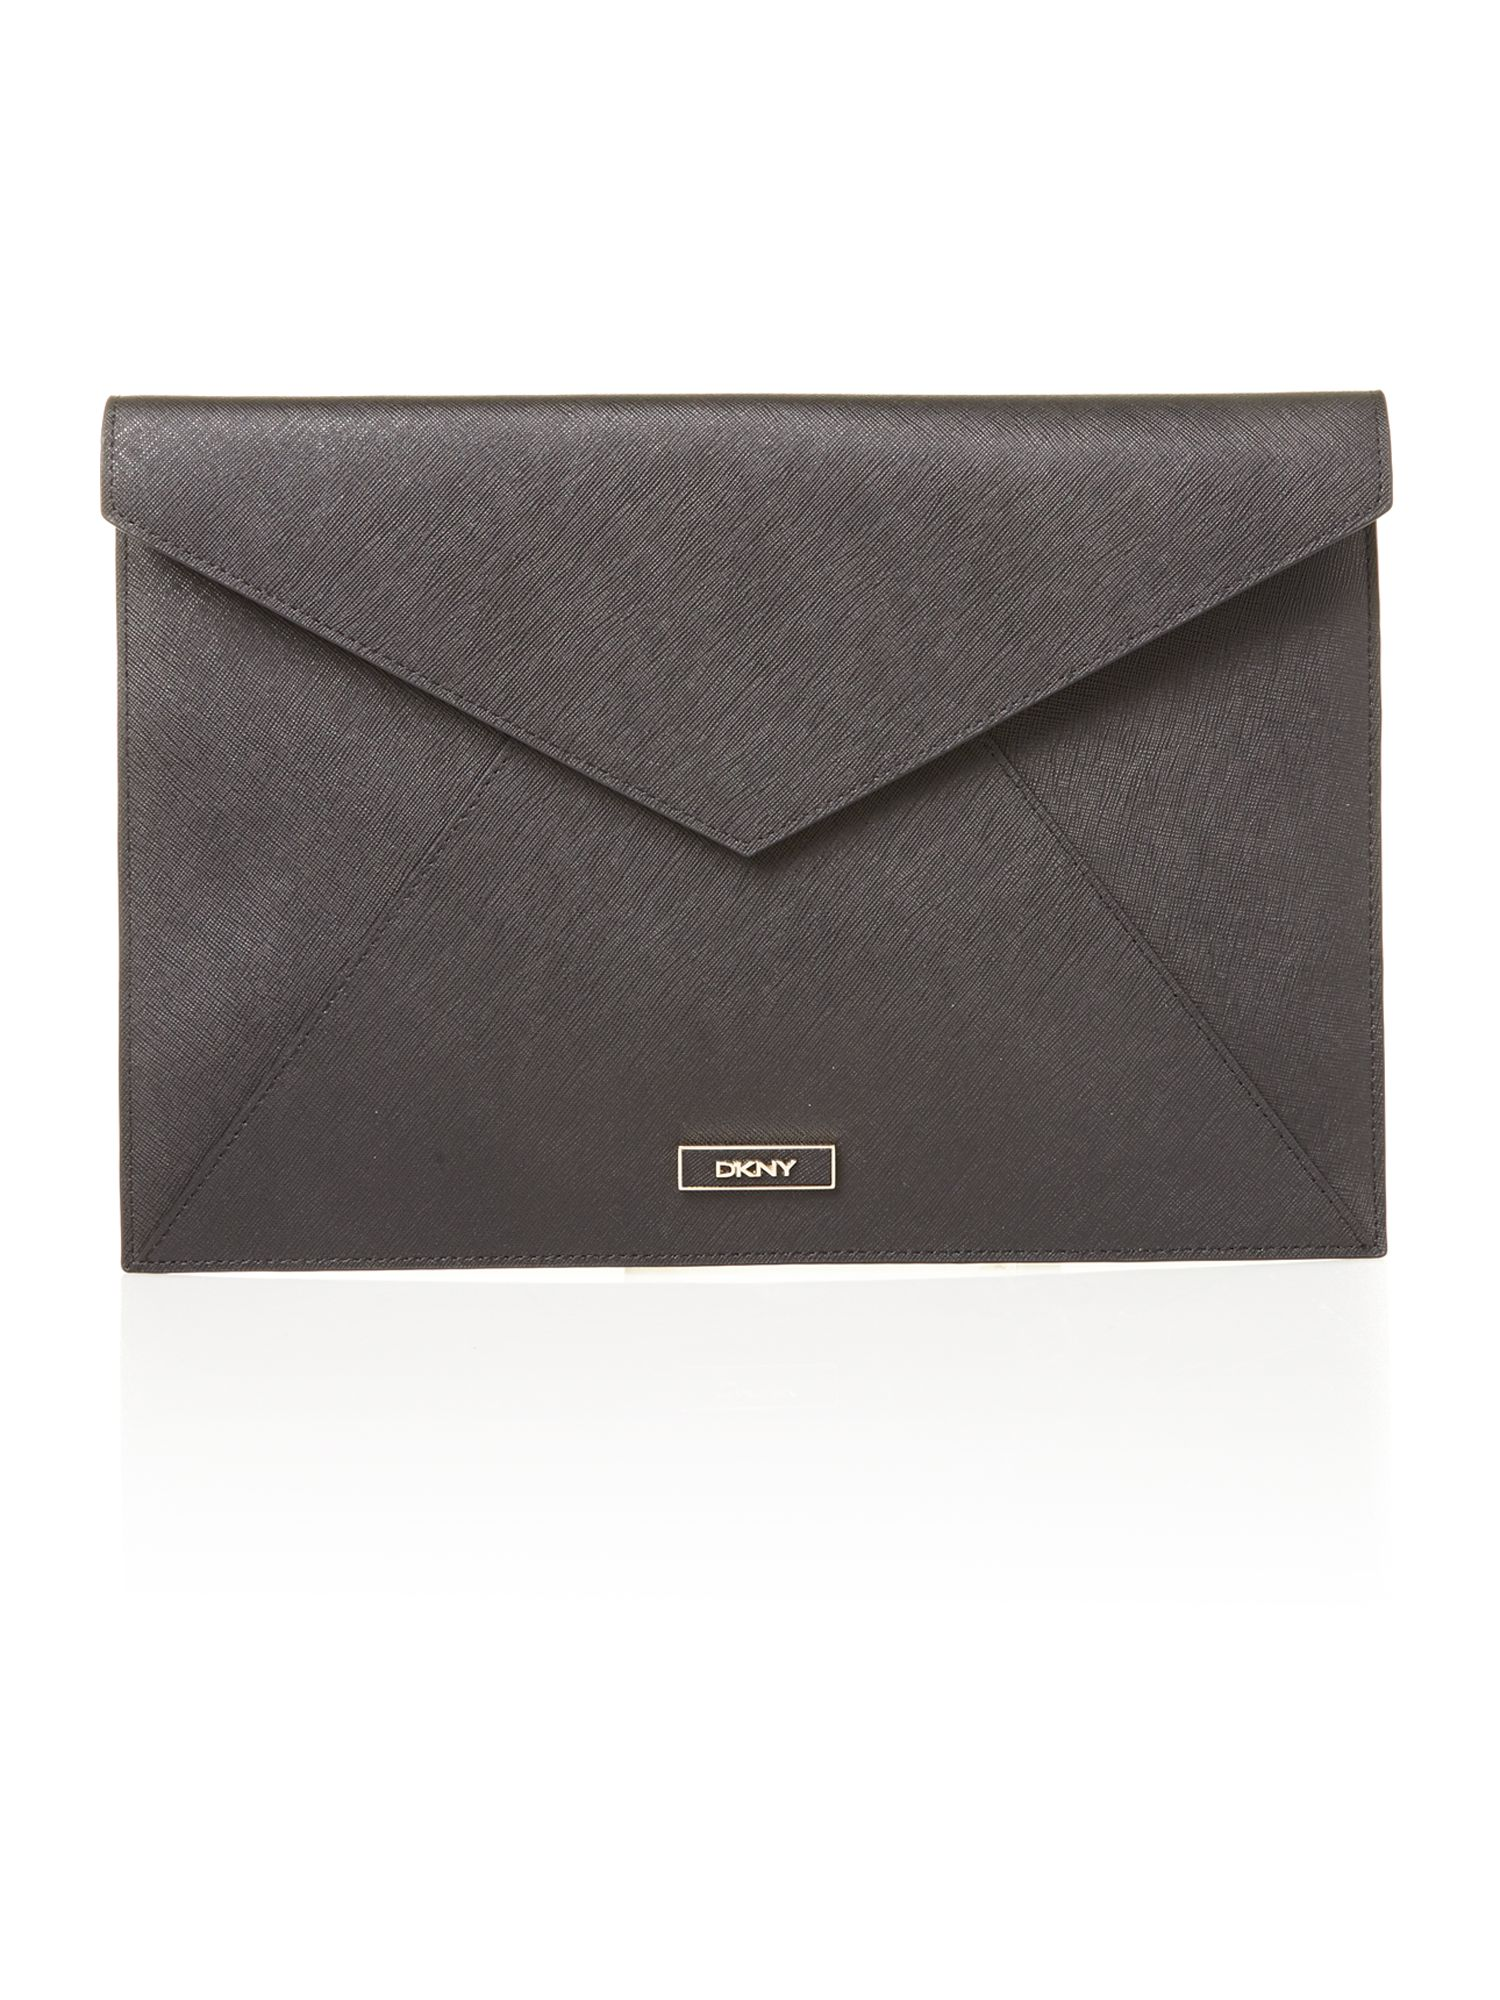 Saffiano black document case